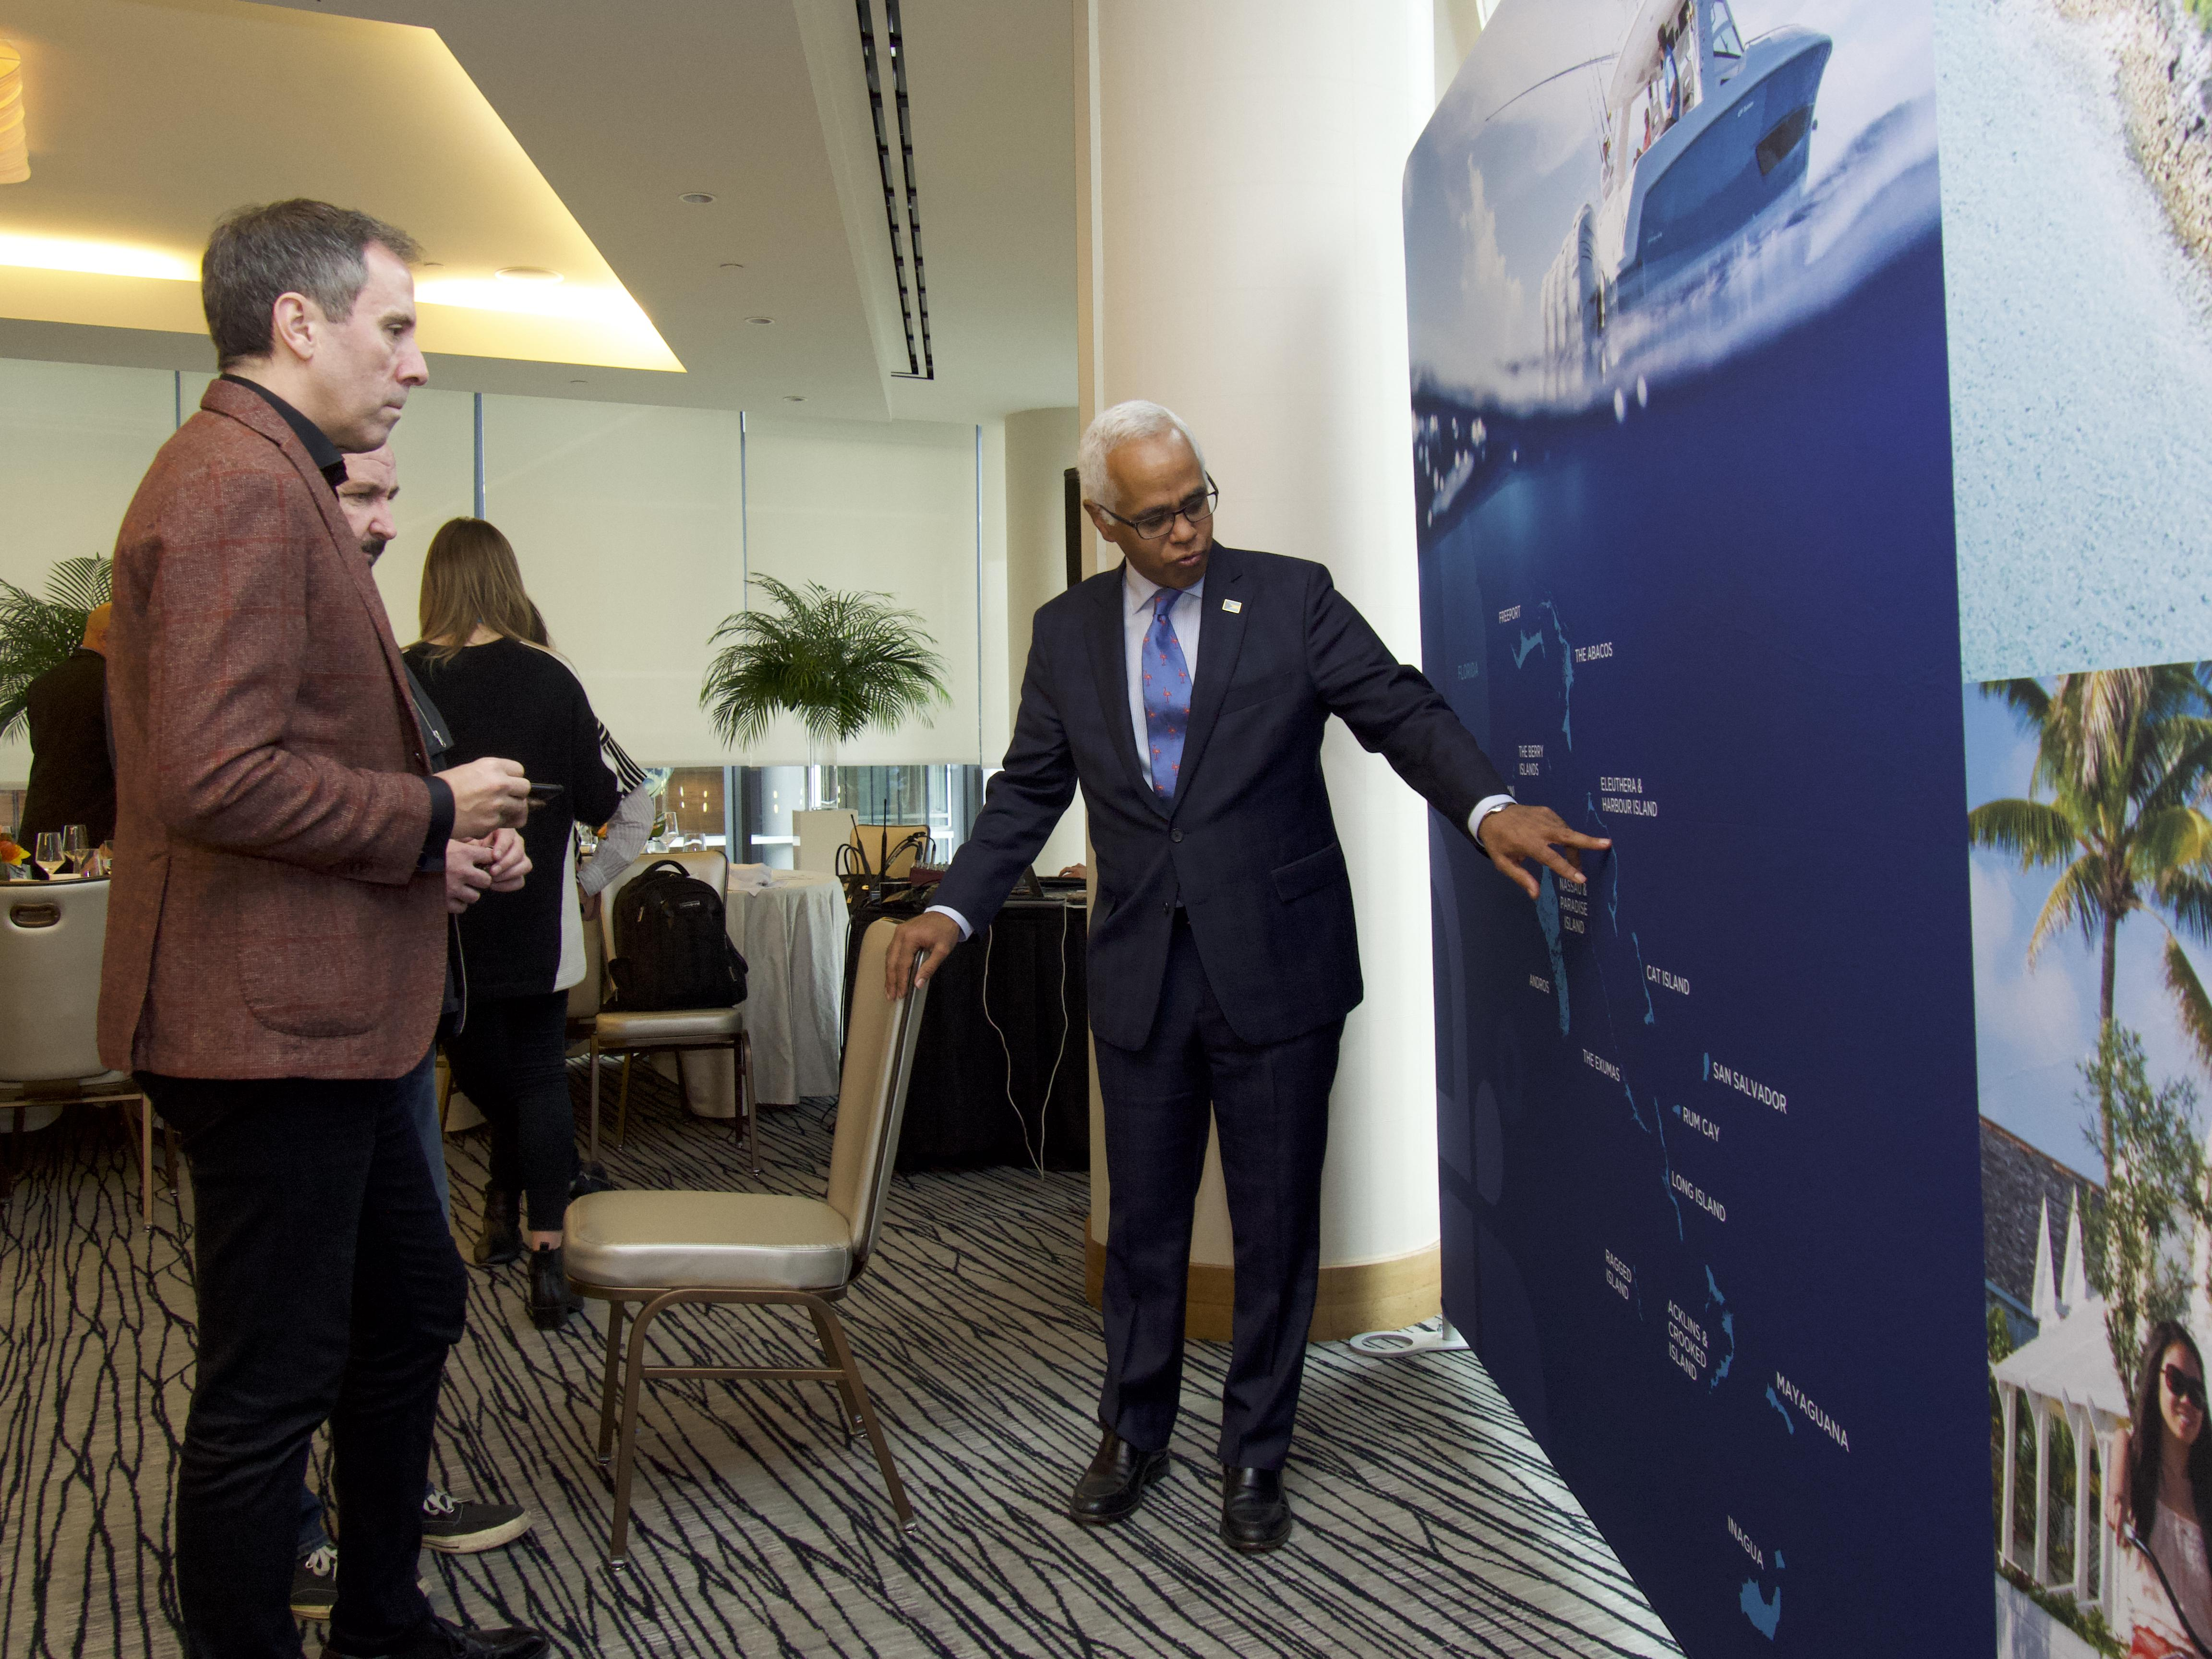 Minister educating media guests on the geography of The Bahamas at Vancouver Media event